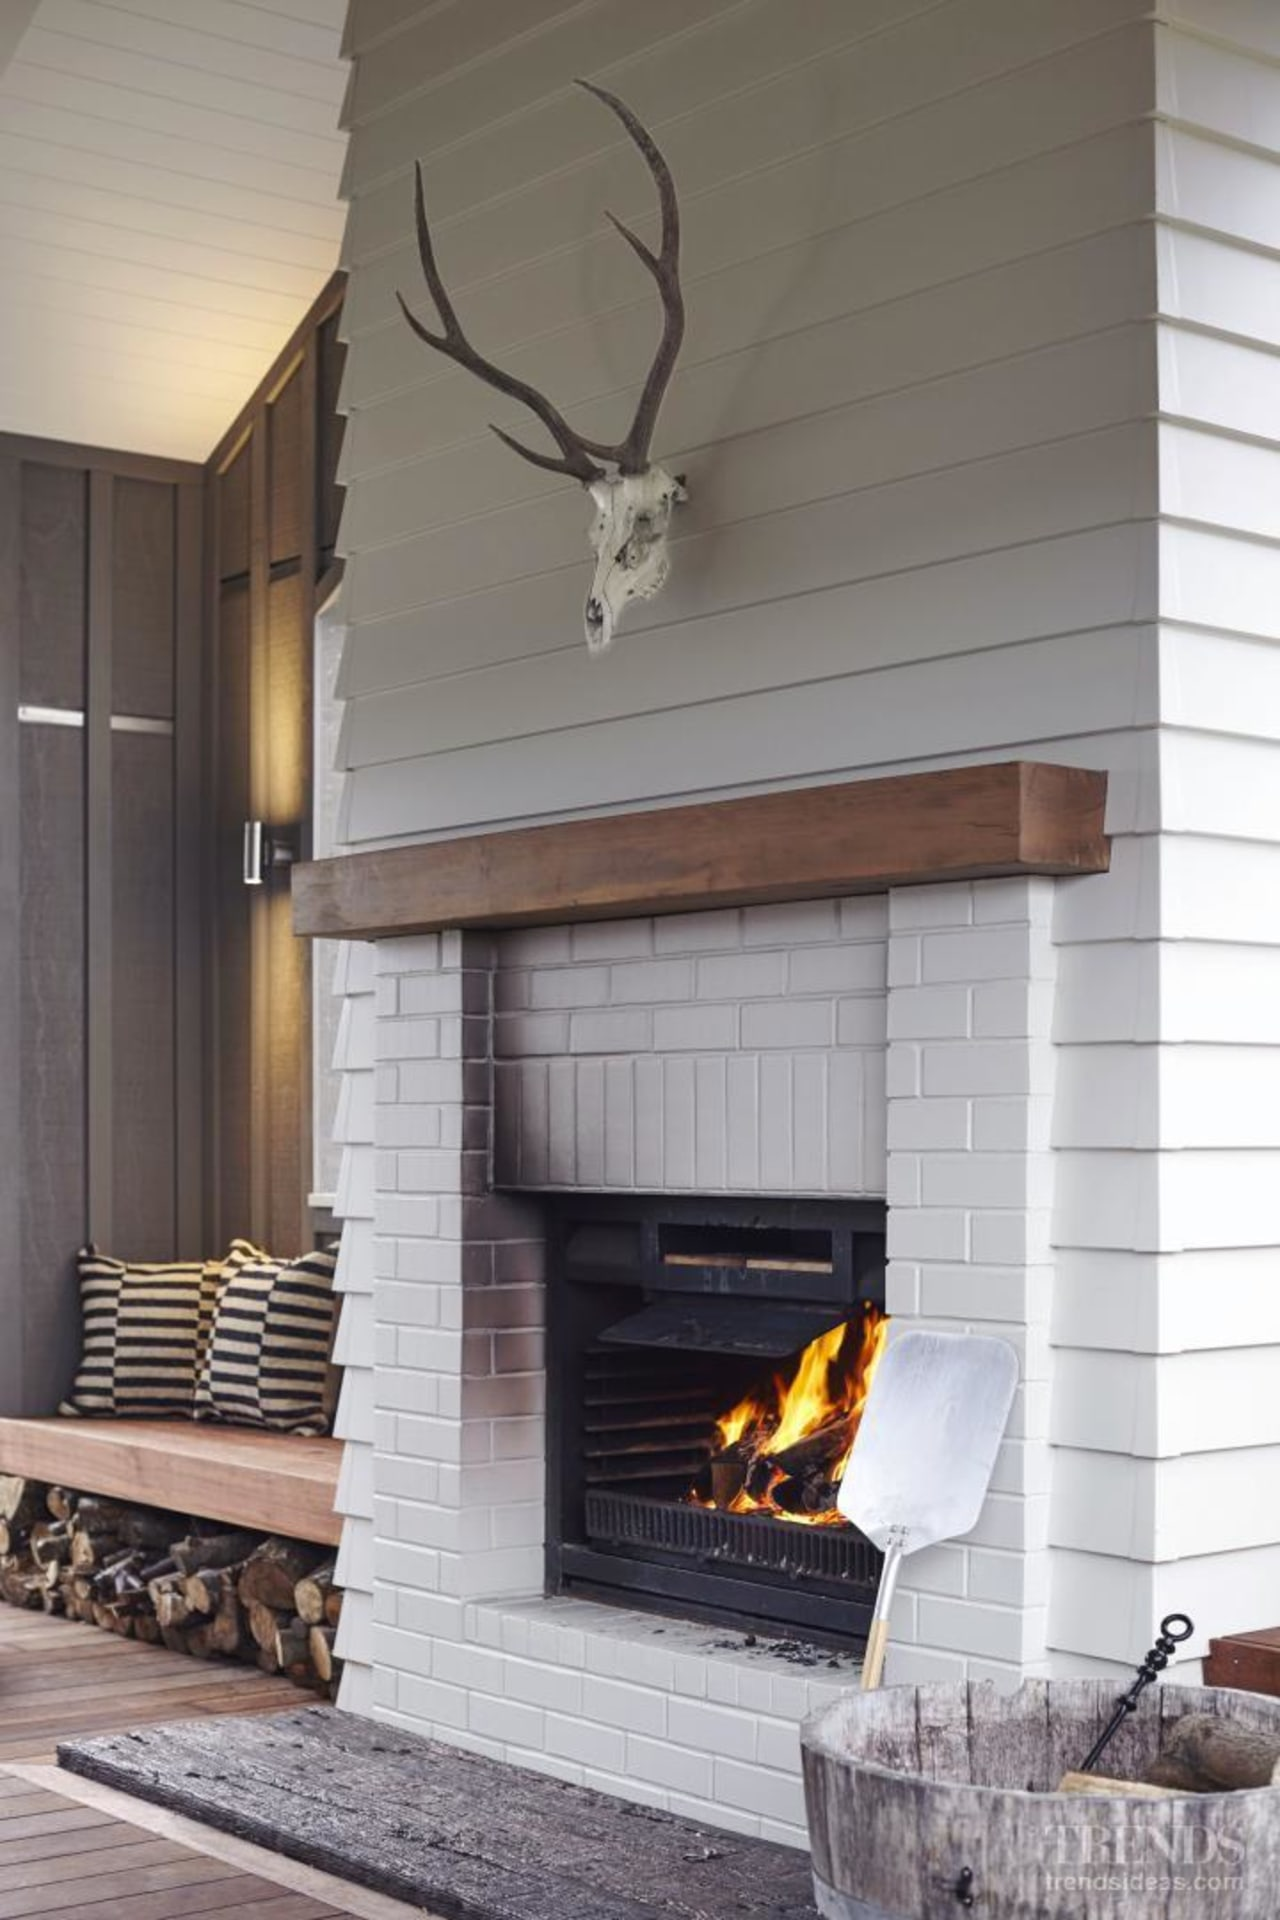 This is one of many classic and contemporary fireplace, hearth, home, interior design, living room, wall, wood burning stove, gray